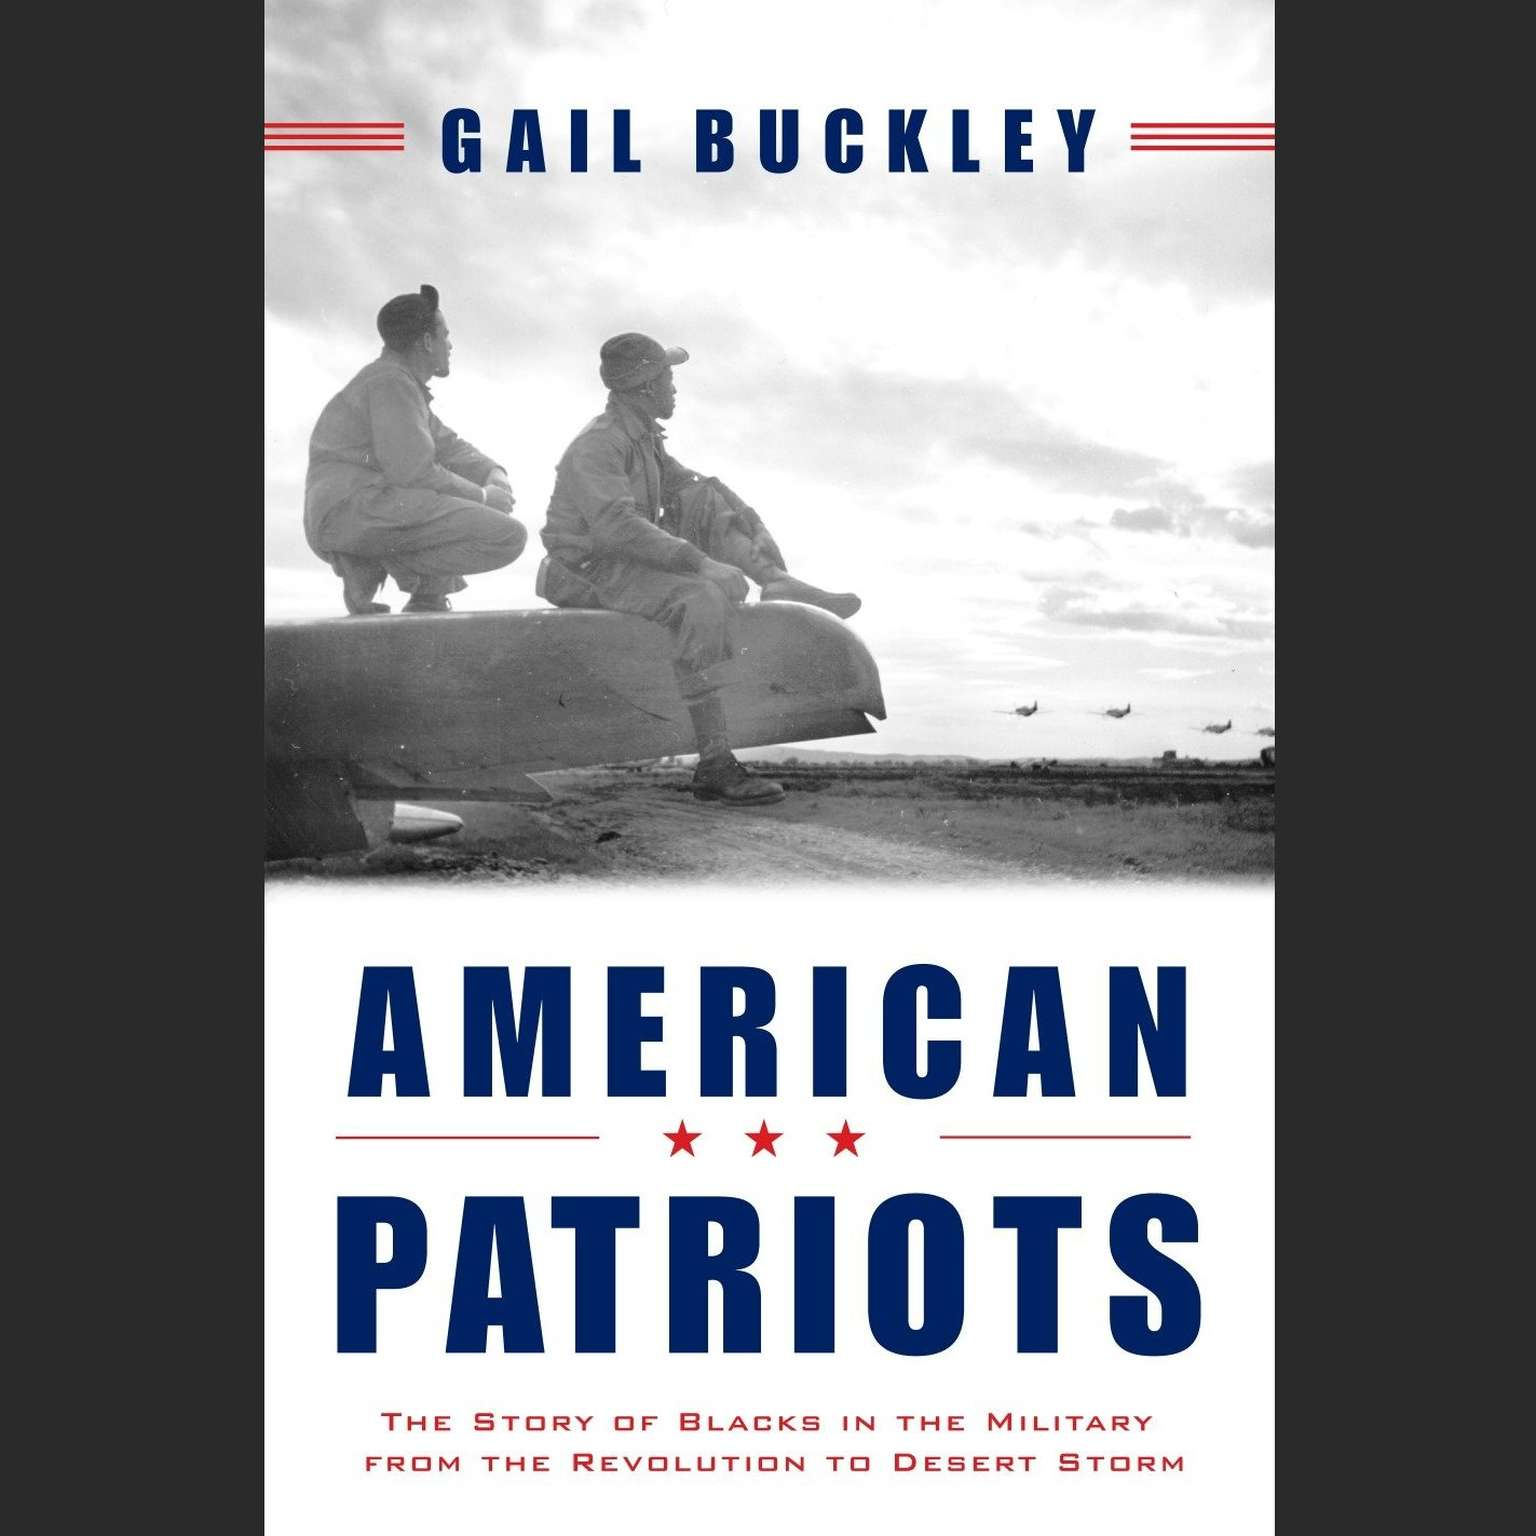 Printable American Patriots: Part1: The Story of Blacks in the Military From the Revolution to Desert Storm Audiobook Cover Art